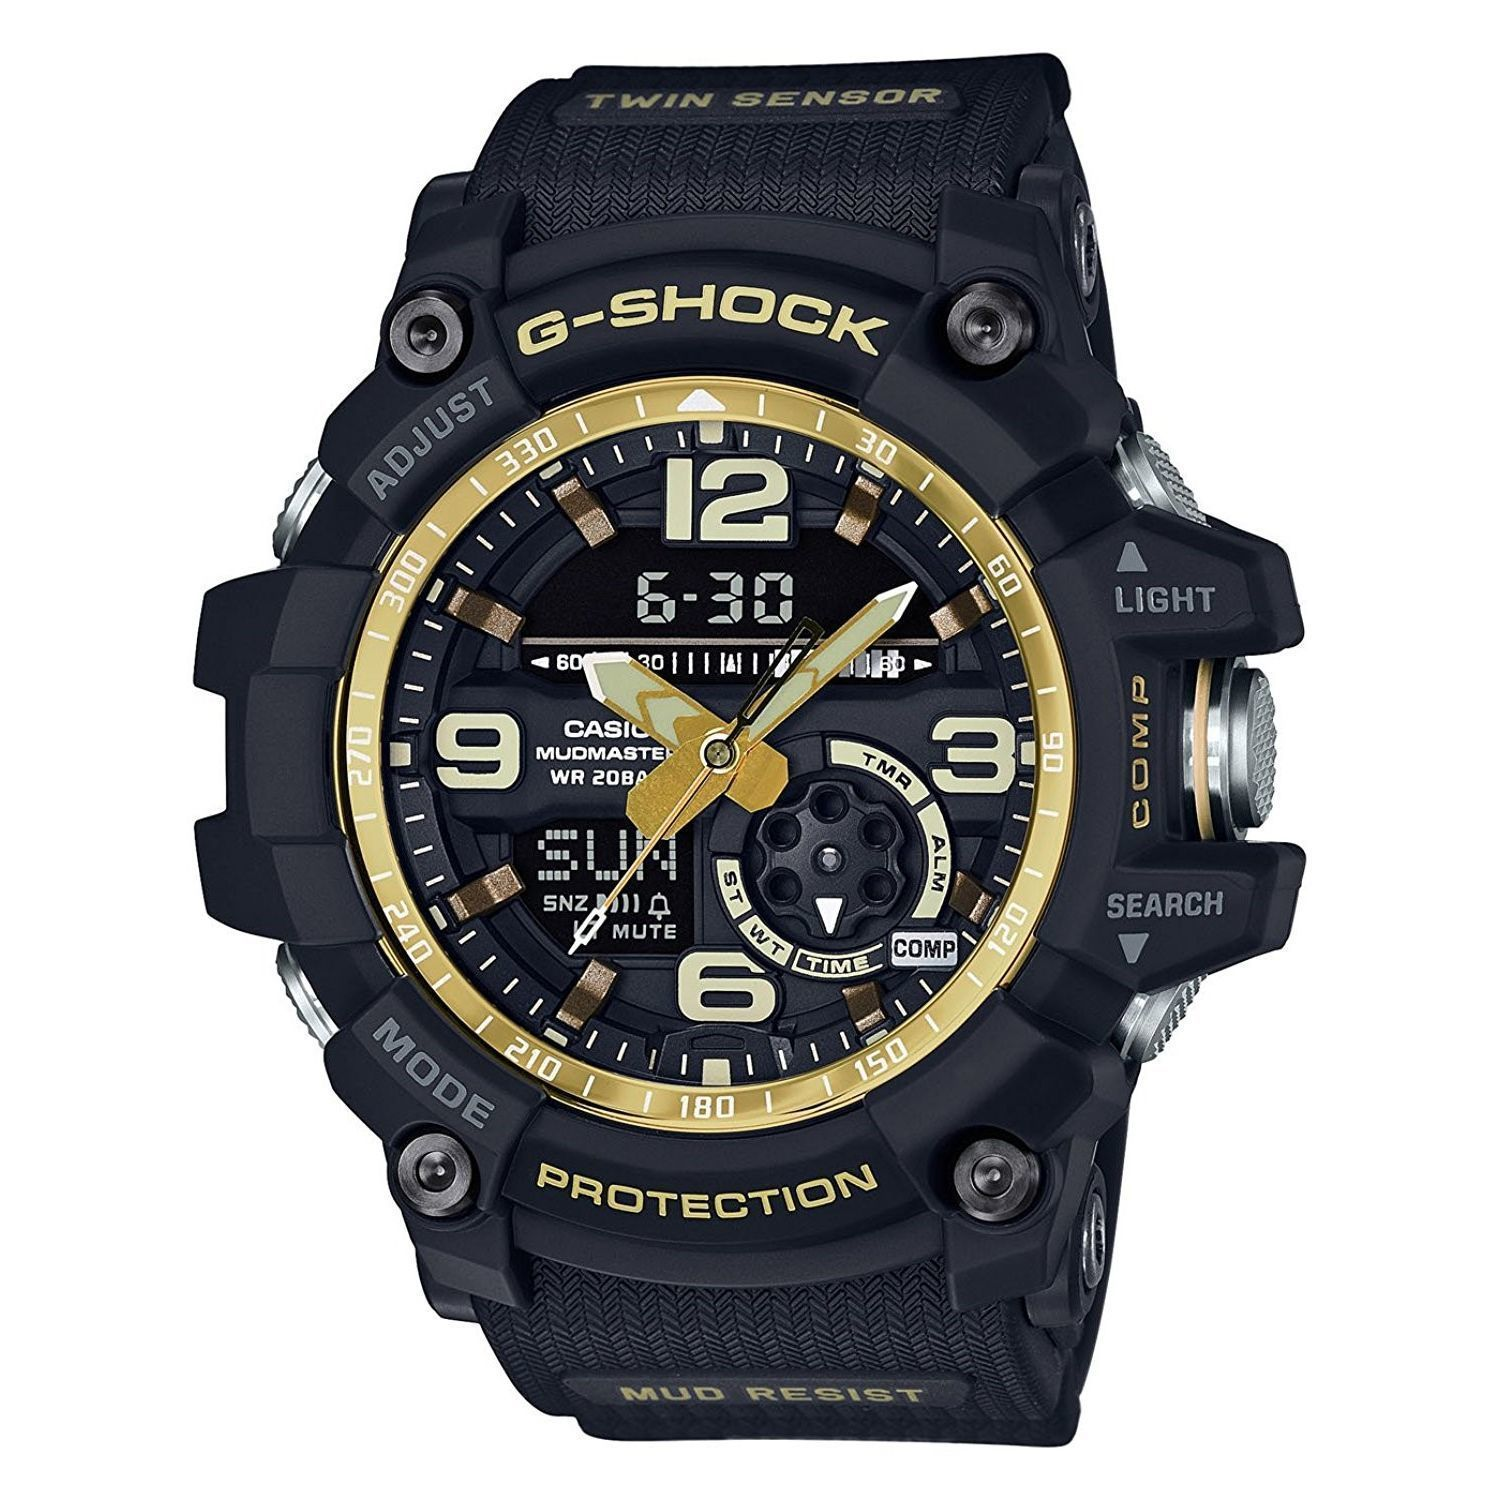 brand color digital constantly itm standards toughness neon s men a the new of comes timekeeping for setting watch quartz based from g collection ebay watches models layered shock analog is main casio on that mens